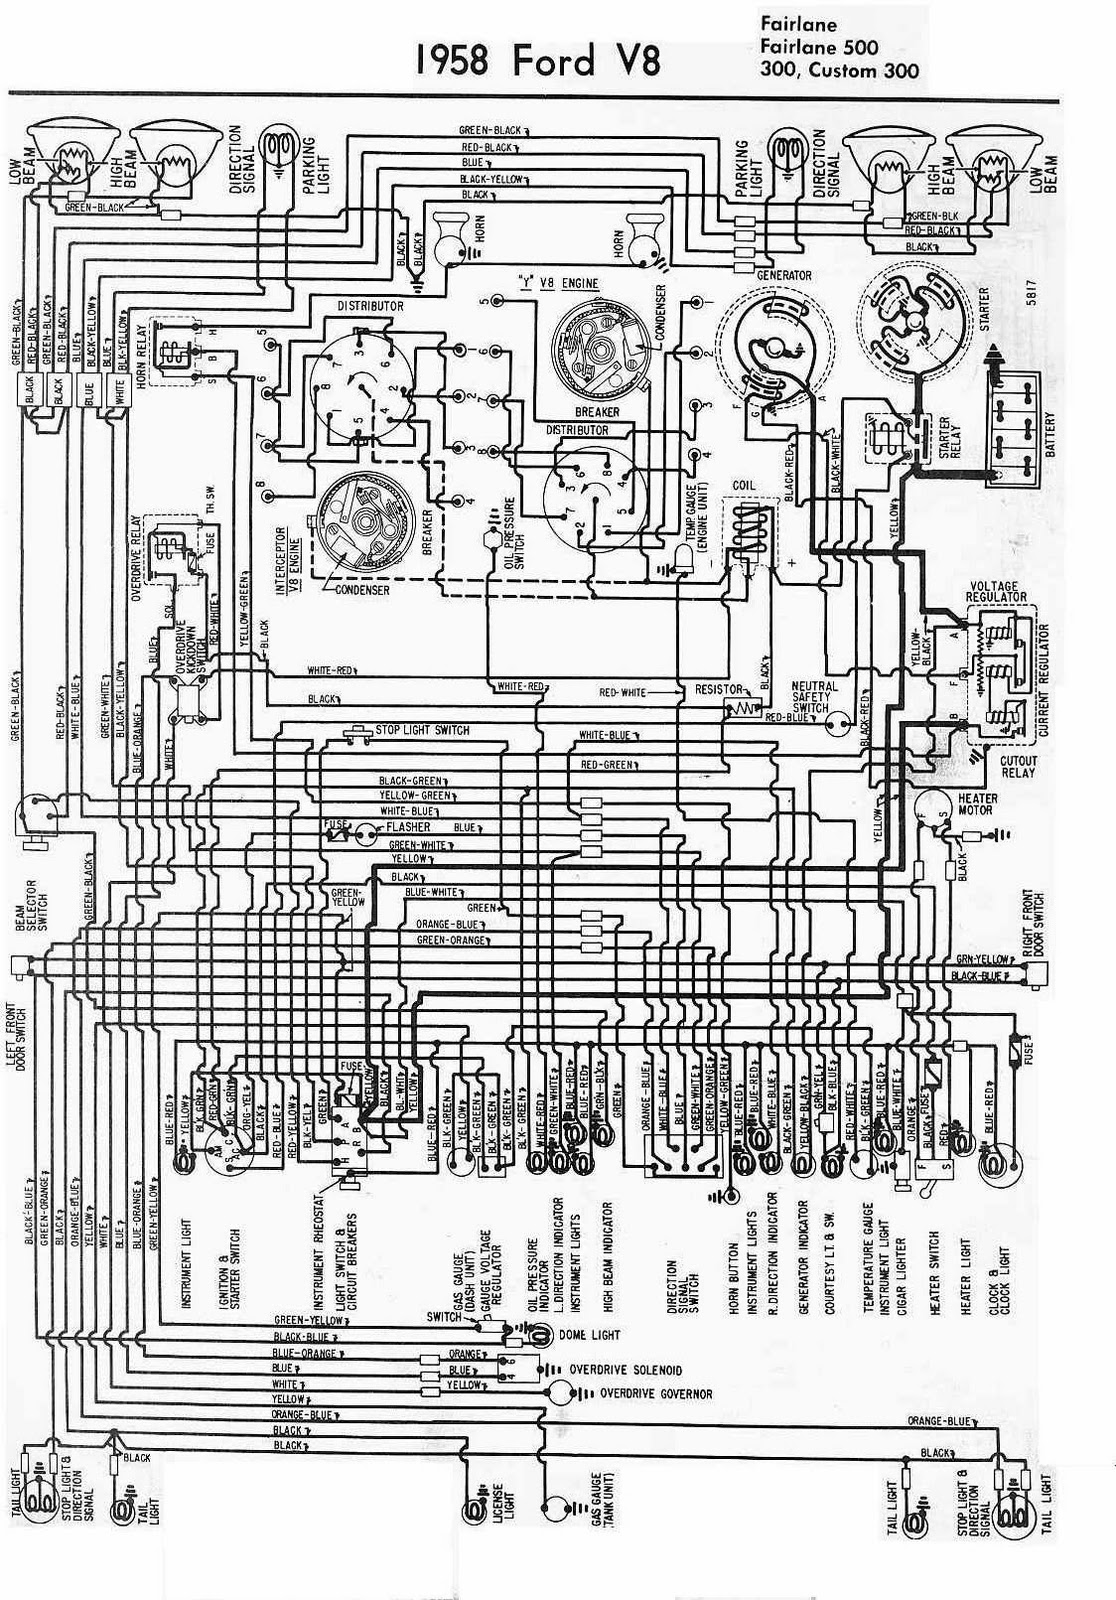 1956 ford wiring wiring diagram centre 1956 ford f100 horn wiring diagram 1956 ford f100 wiring [ 1116 x 1600 Pixel ]